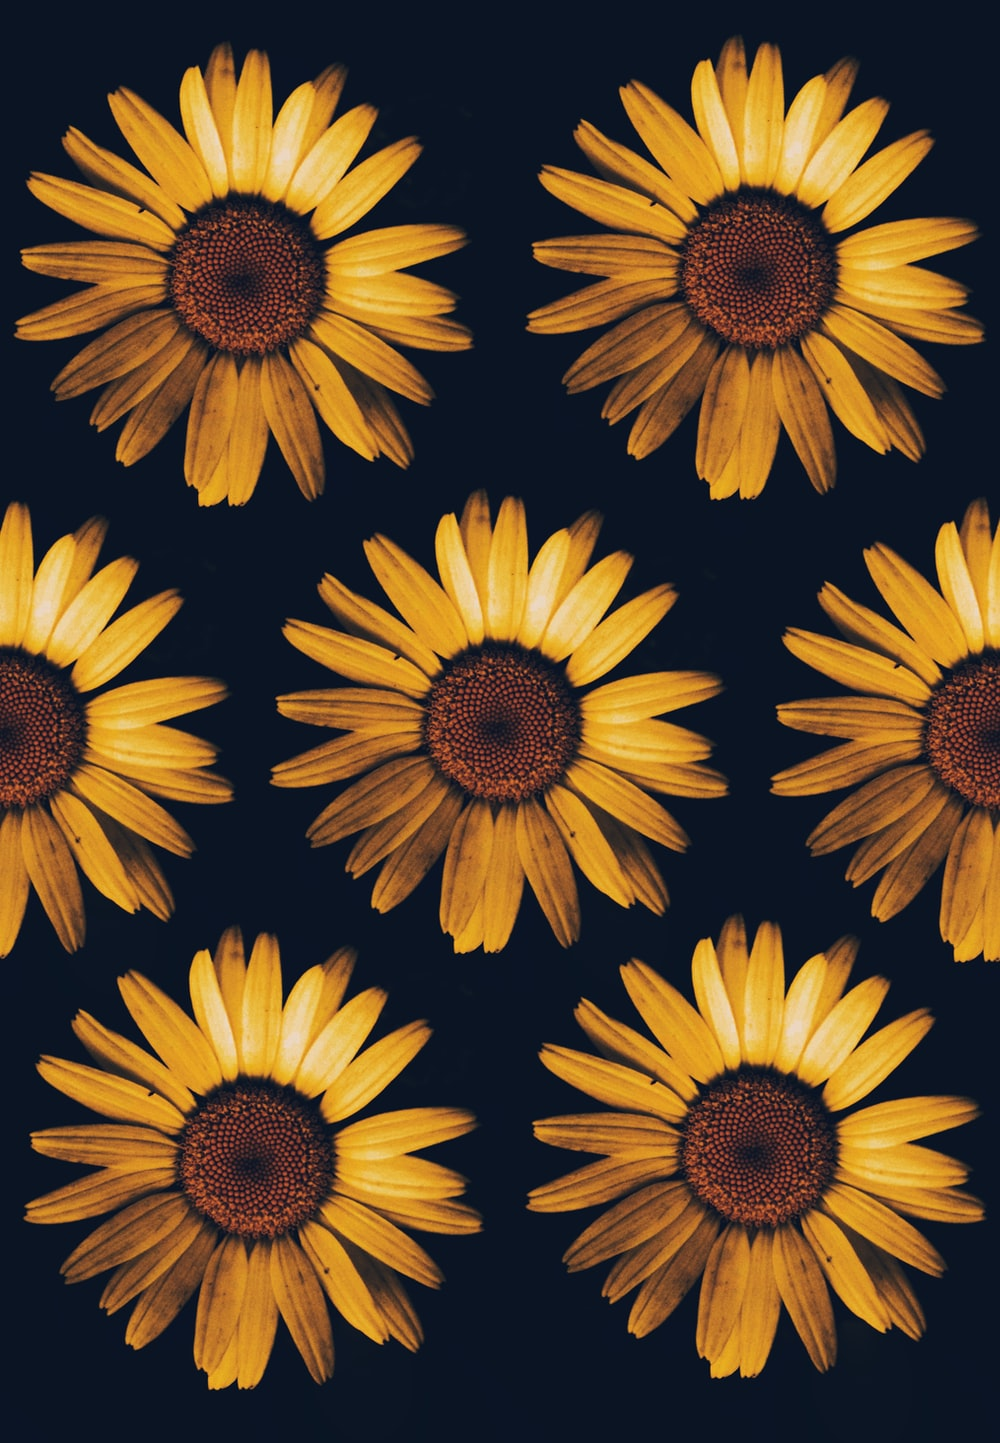 Sunflower Wallpapers Free Hd Download 500 Hq Unsplash